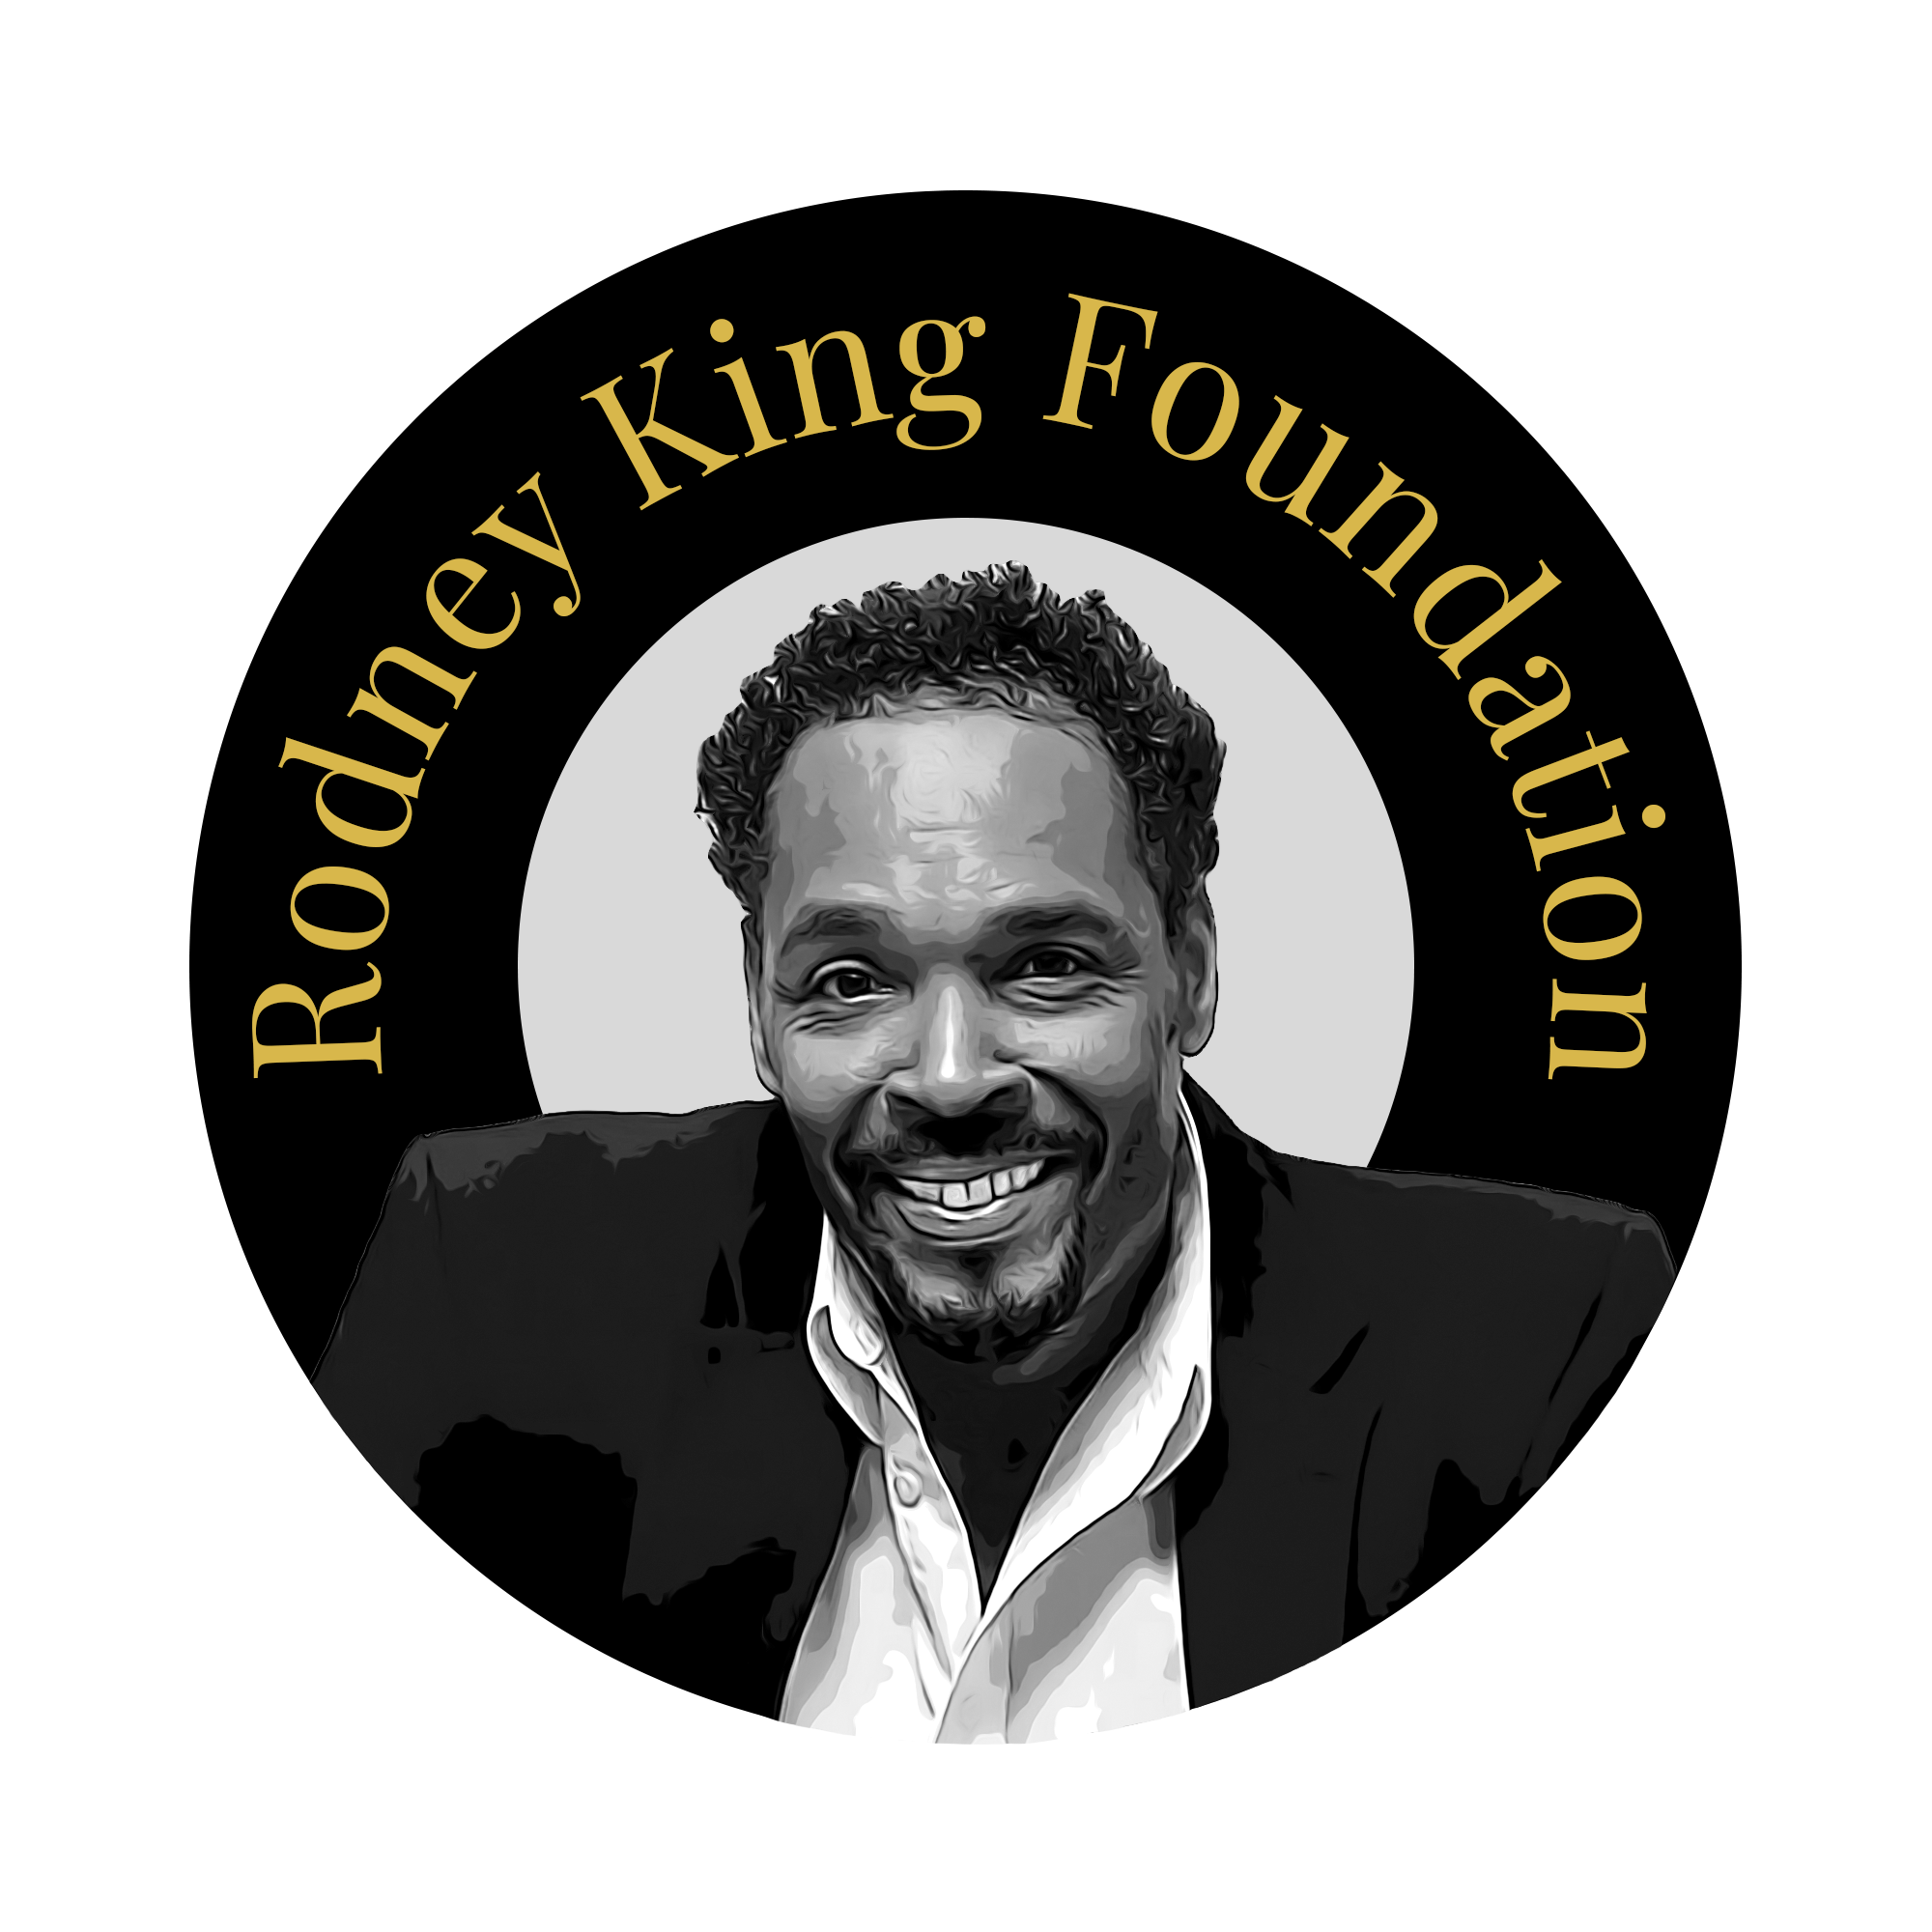 Rodney King Foundation